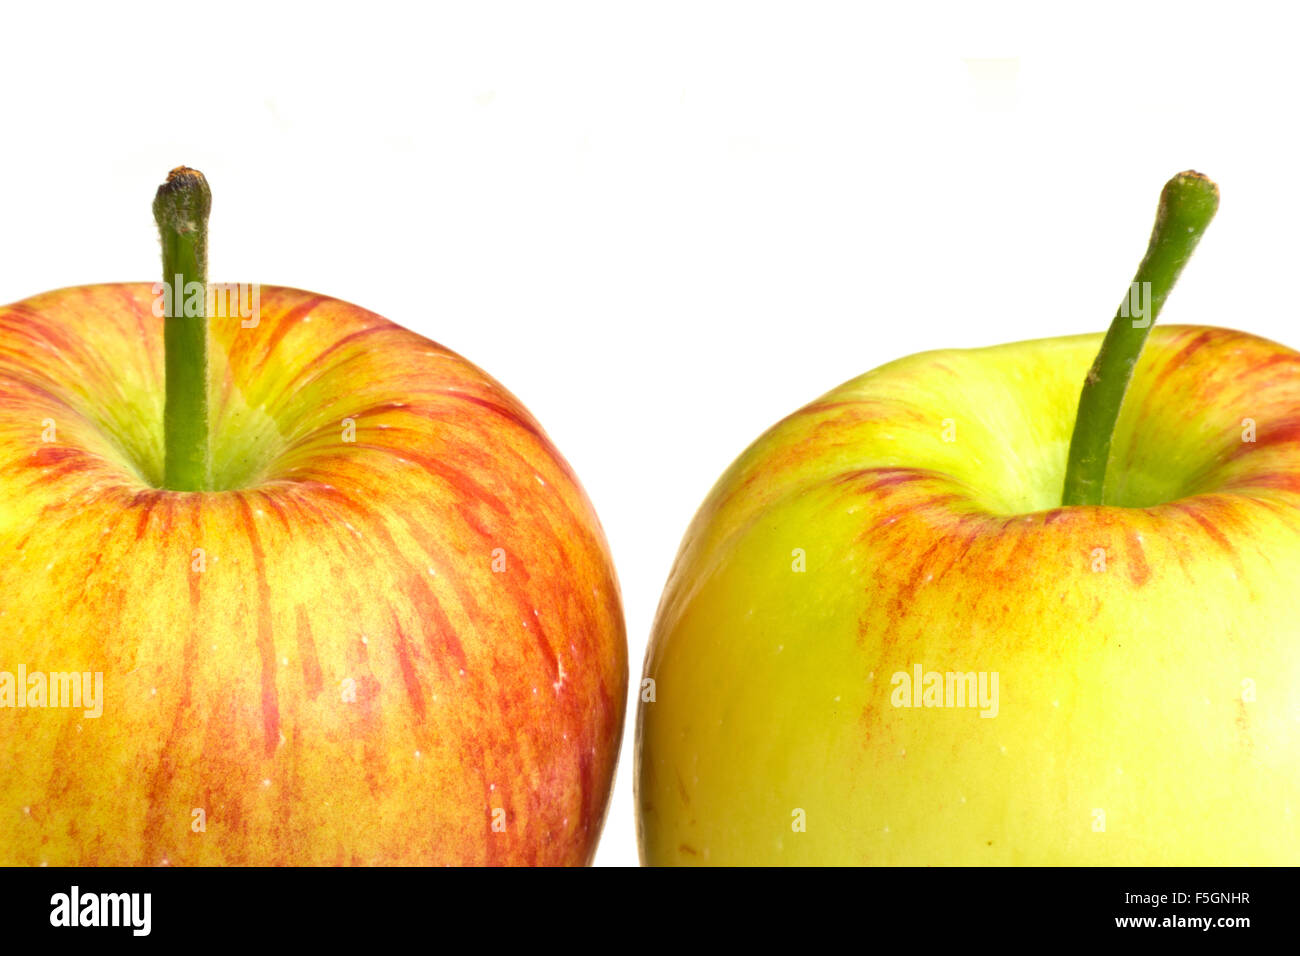 Apples - Stock Image